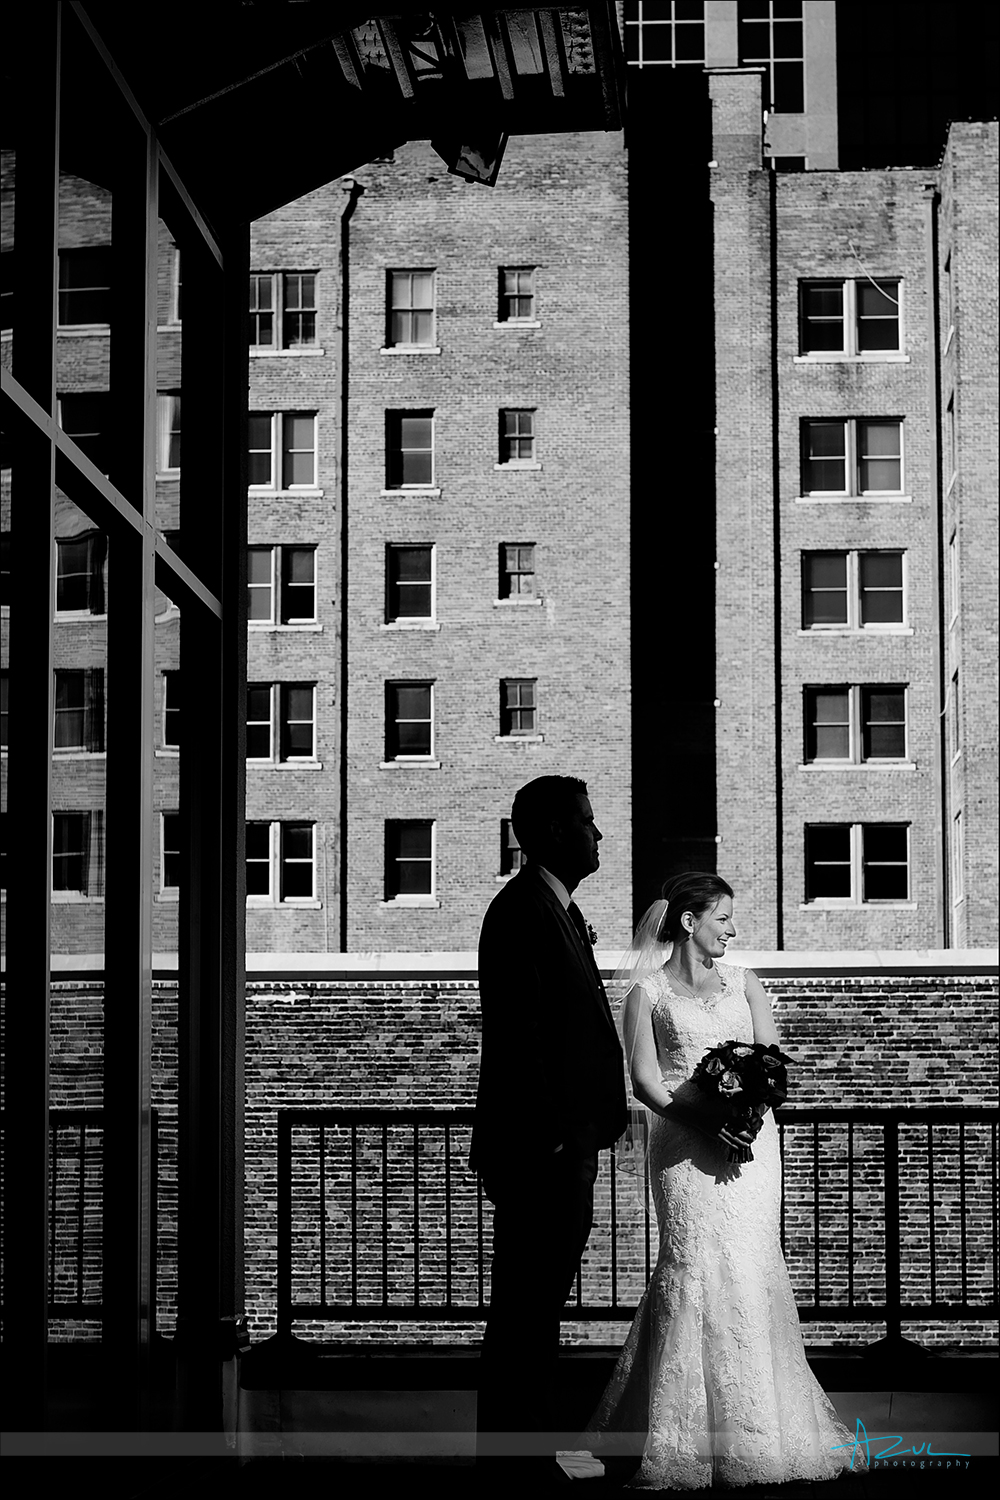 Unique wedding day portrait photography of bride and groom Raleigh, NC